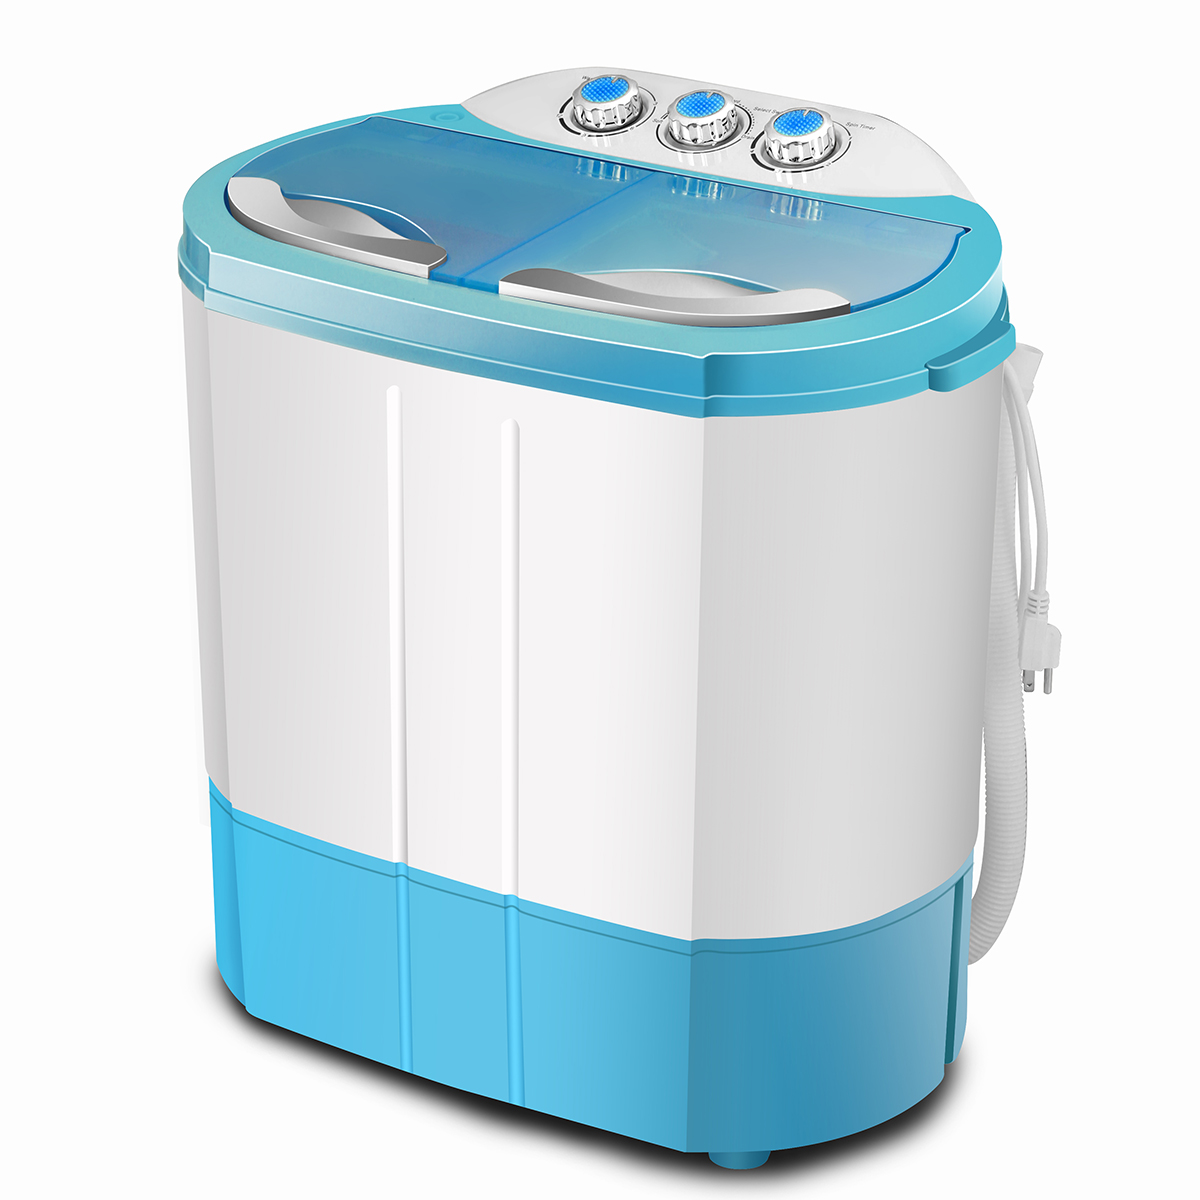 Details About 9.9LBS Mini Portable Top Load Washing Machine Compact Twin  Tub Laundry Washer US